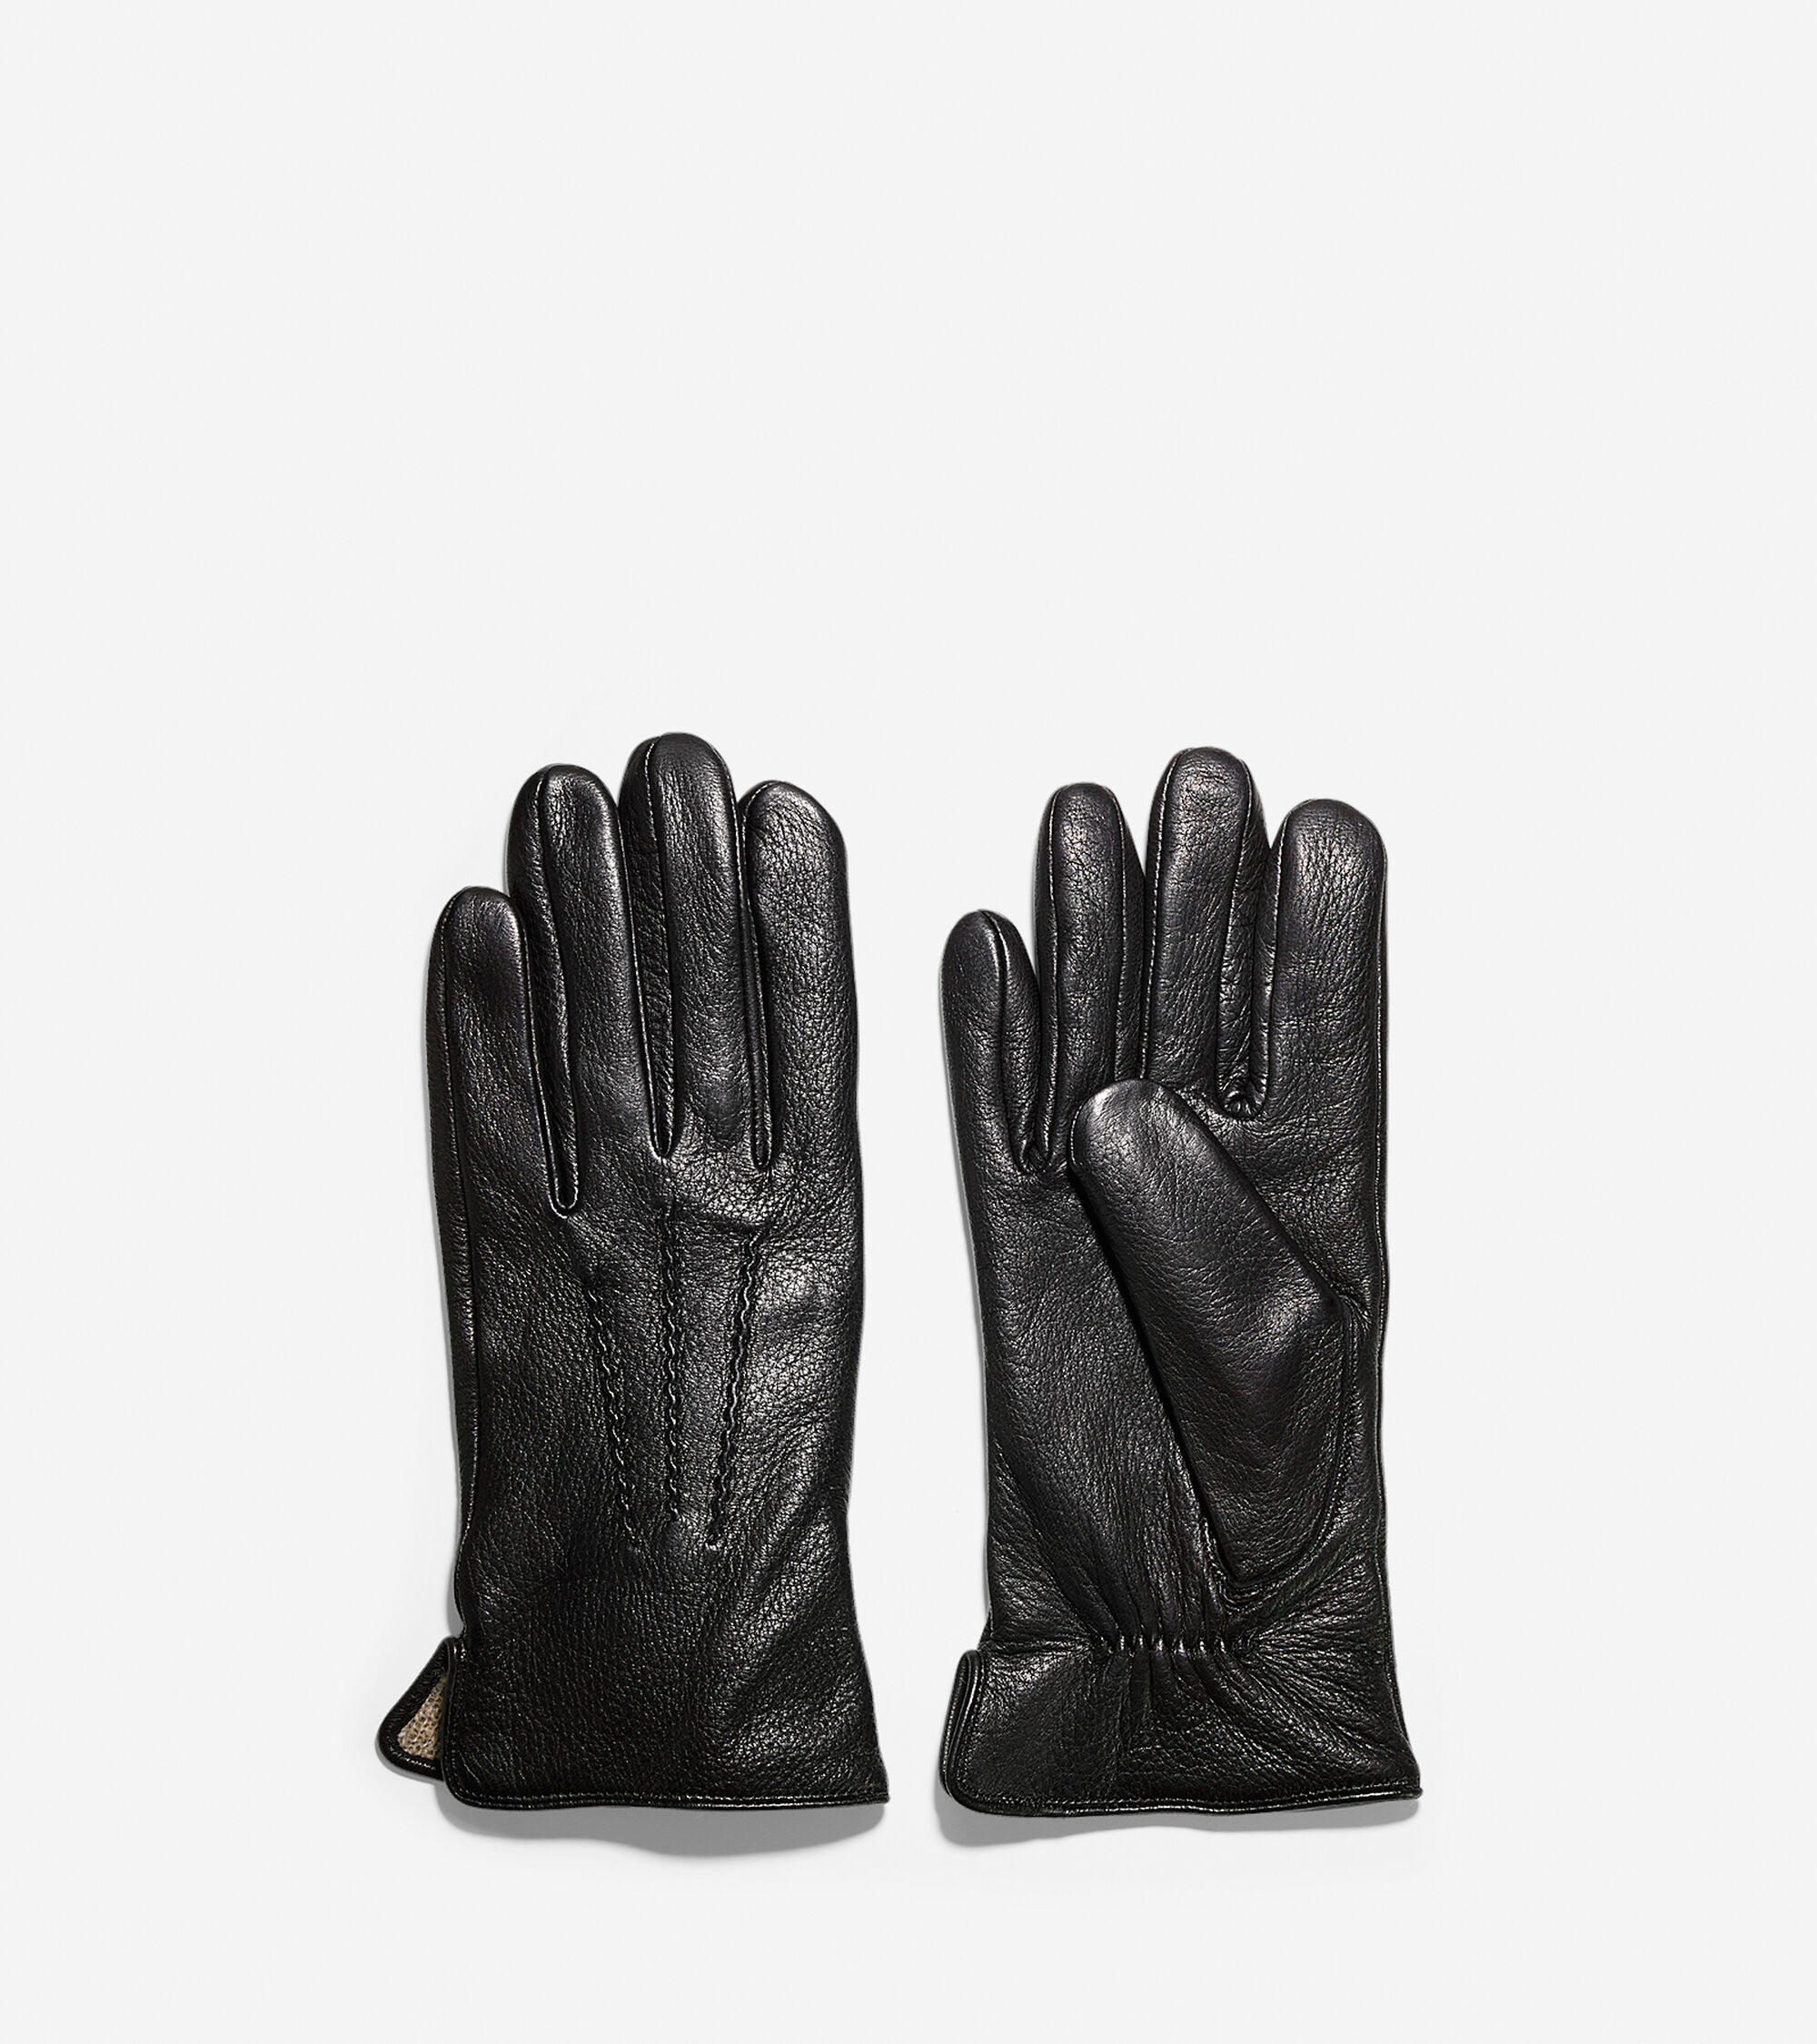 Cole haan black leather gloves -